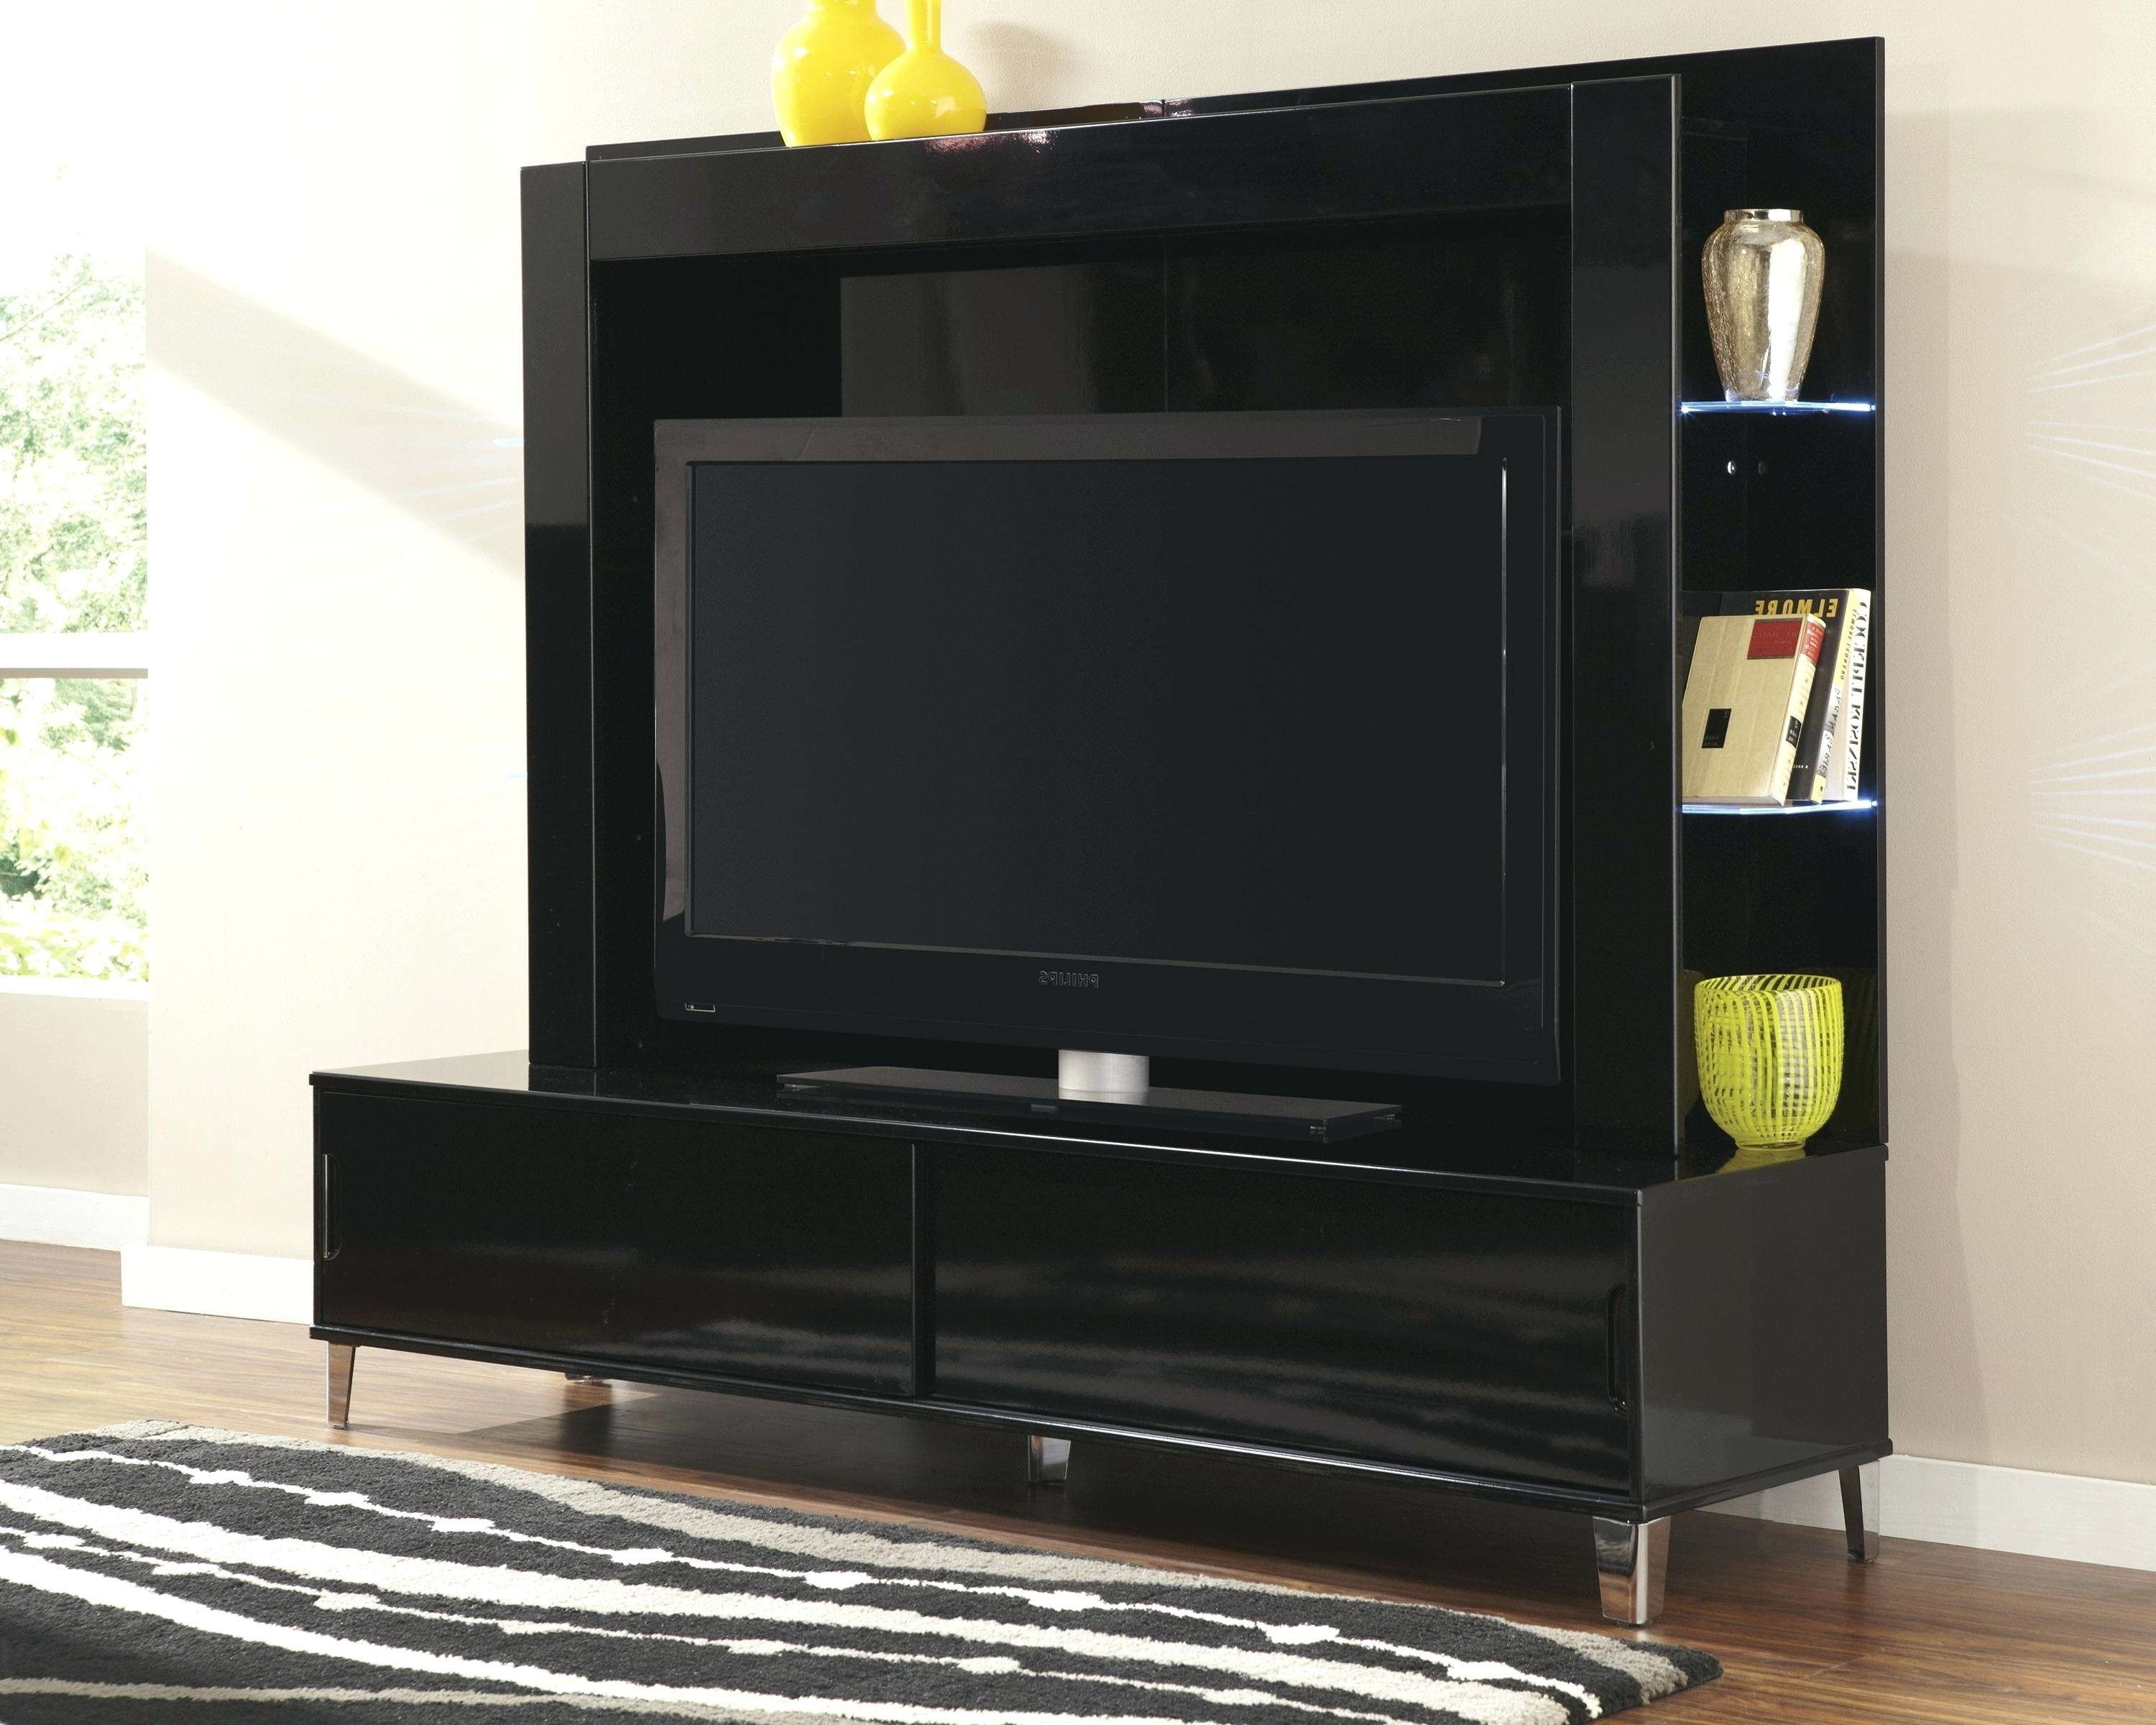 Modern Corner Tv Stands Flide Co Furnitures Stand With Back Panel Throughout Modern Corner Tv Stands (View 13 of 20)